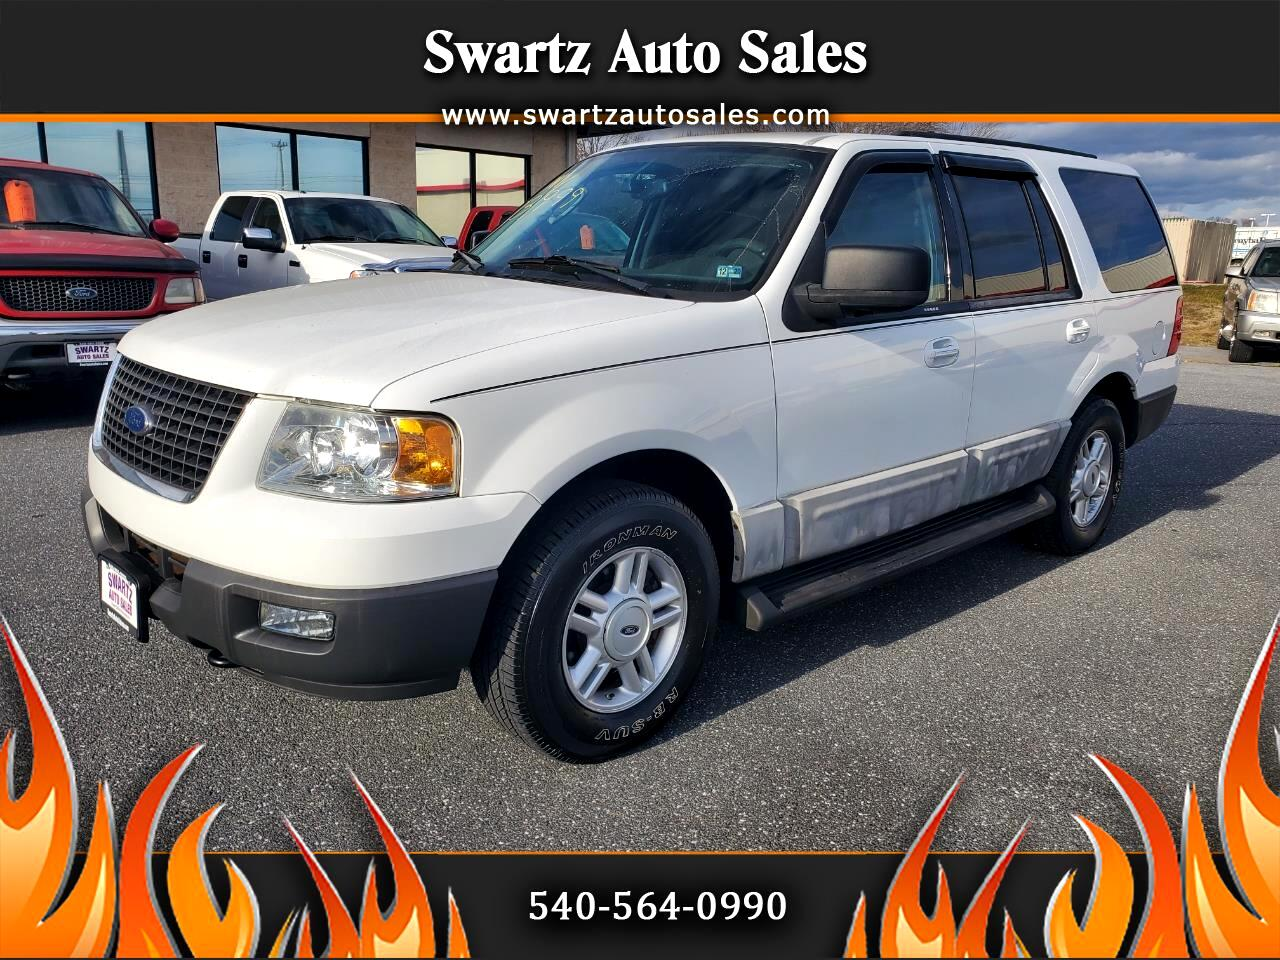 Ford Expedition 5.4L XLT 4WD 2004